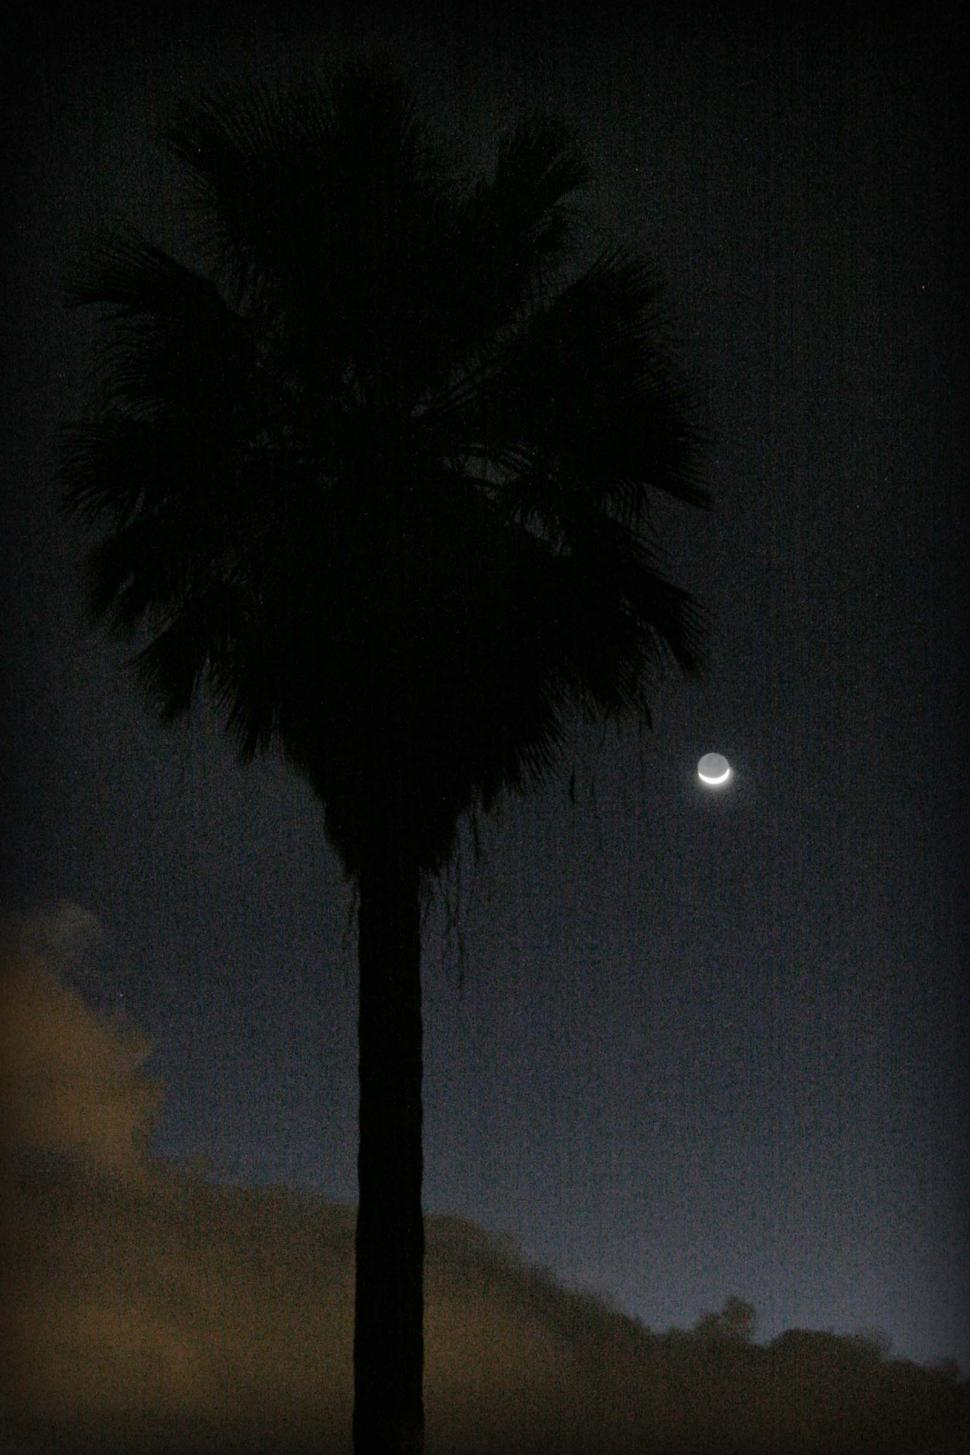 Download Free Stock Photo of Grainy dark palm and moon